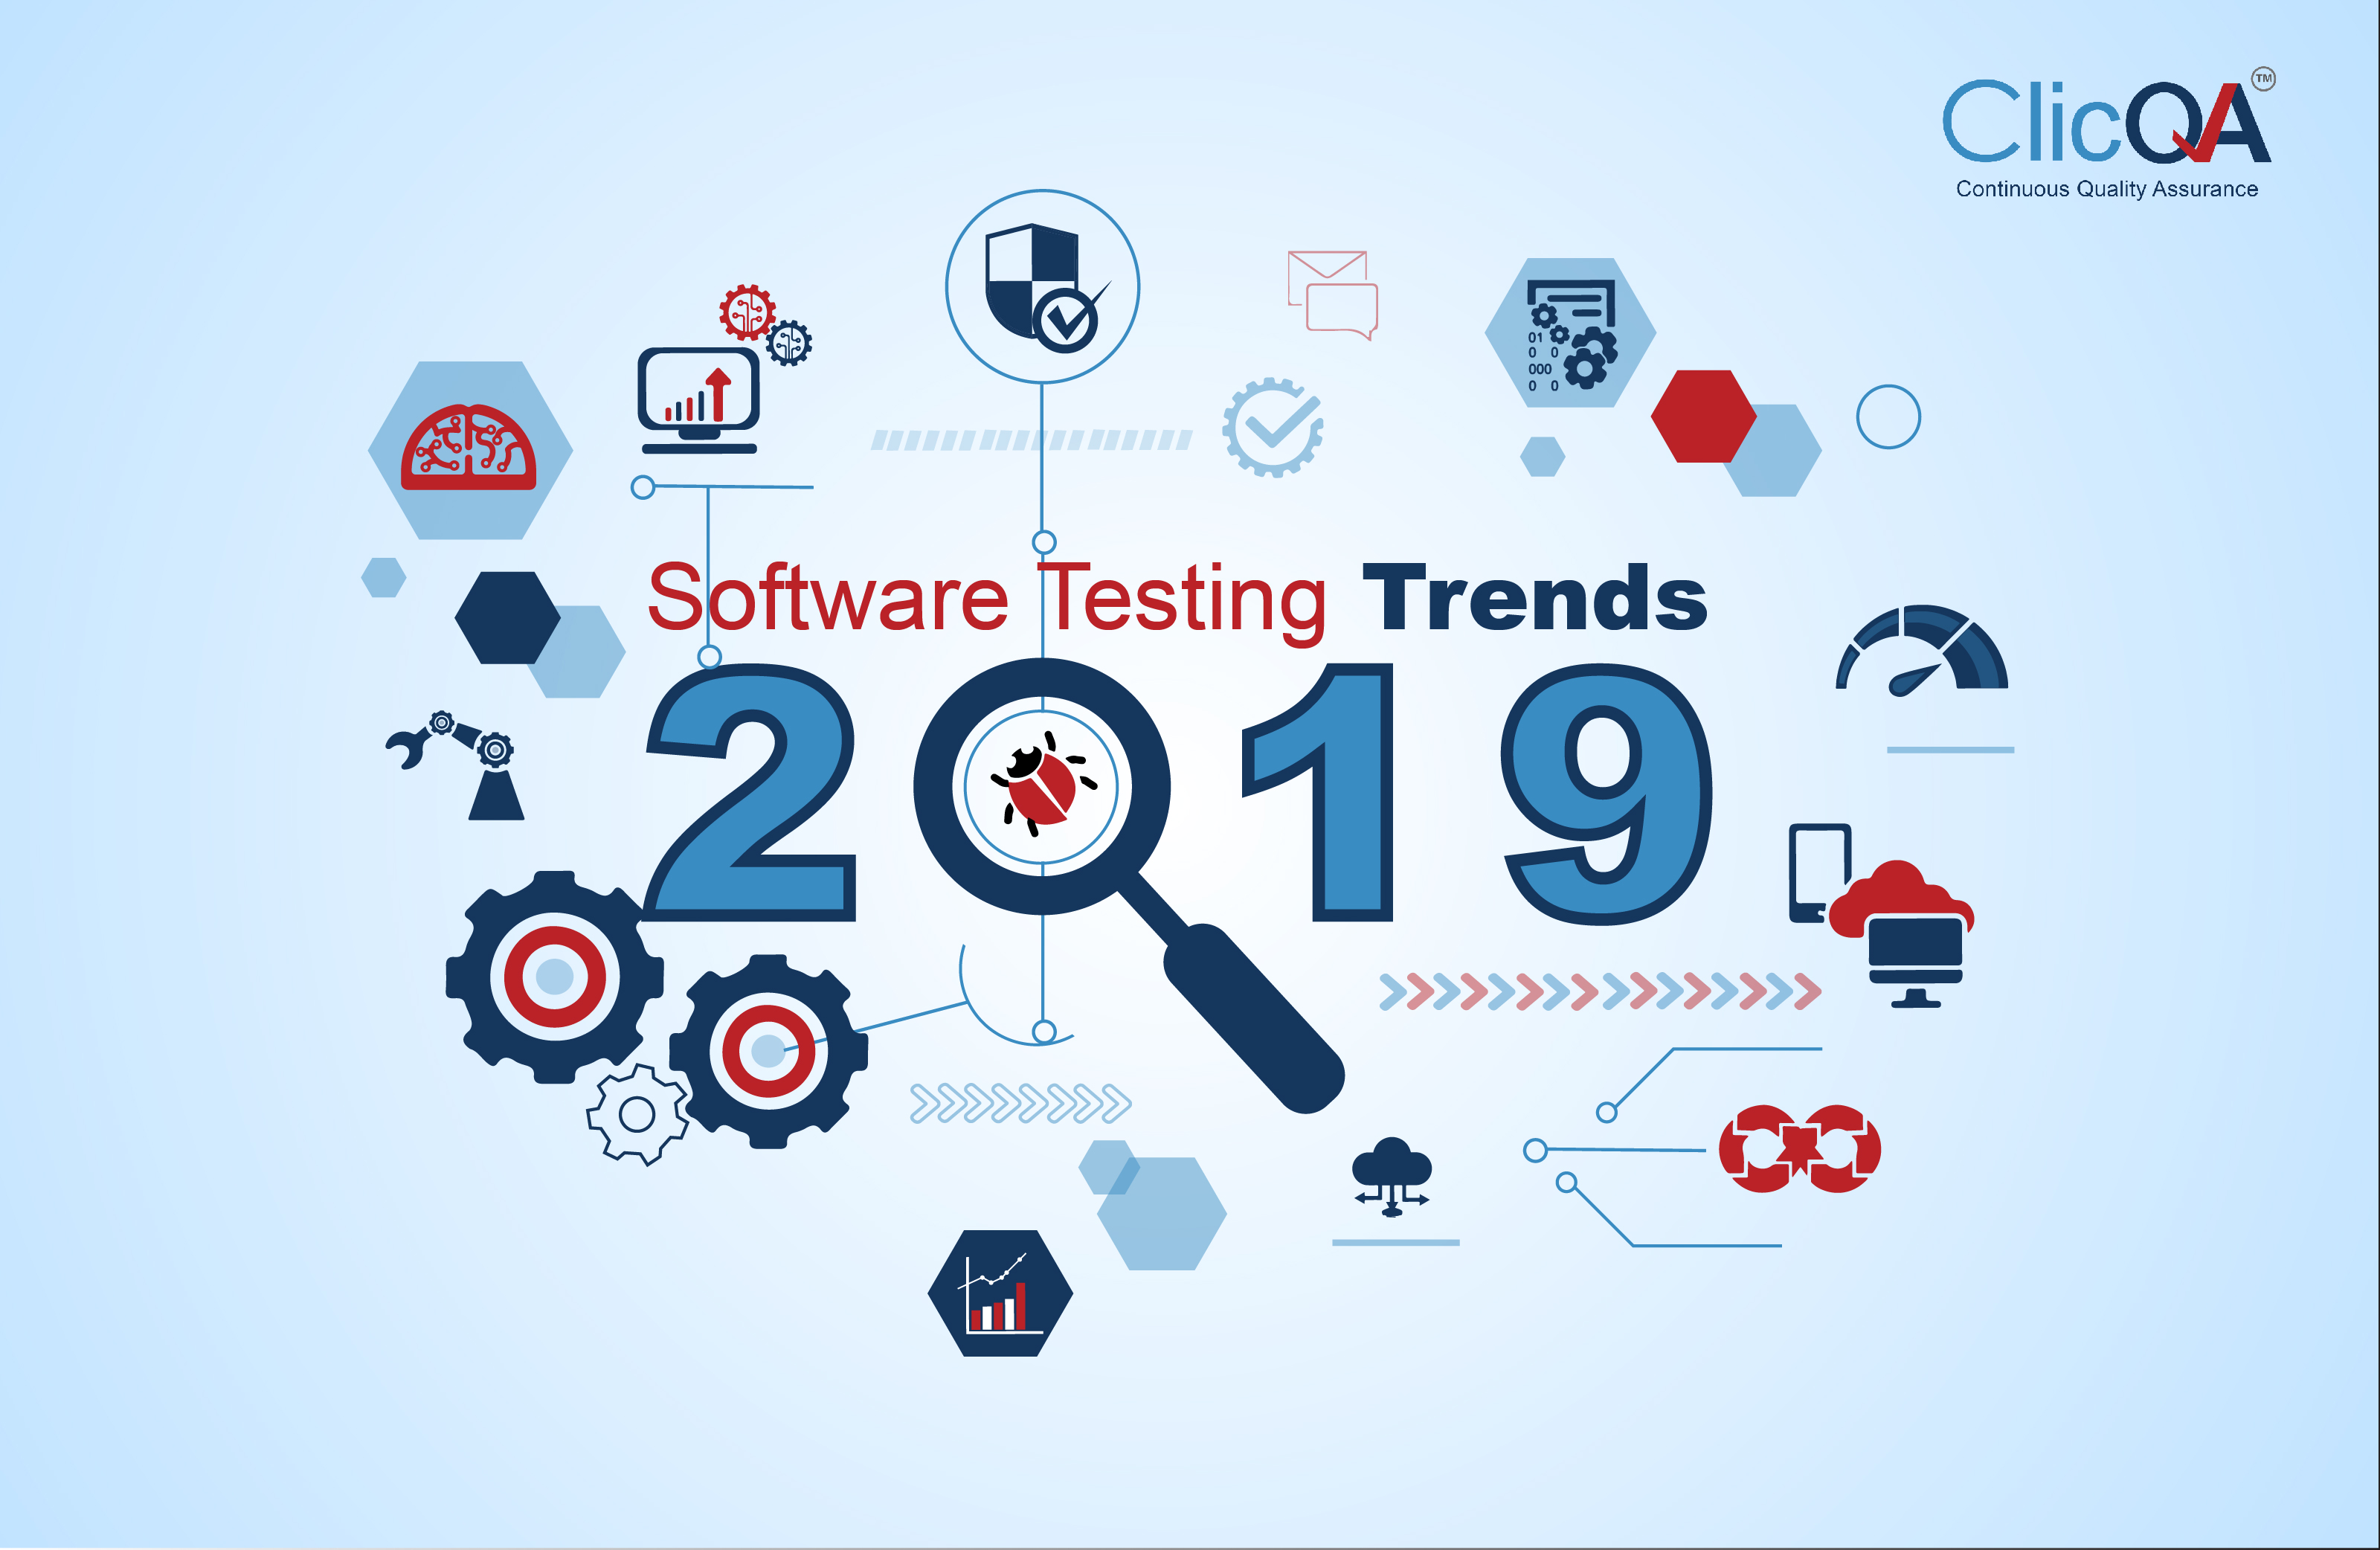 Software Testing Trends 2019